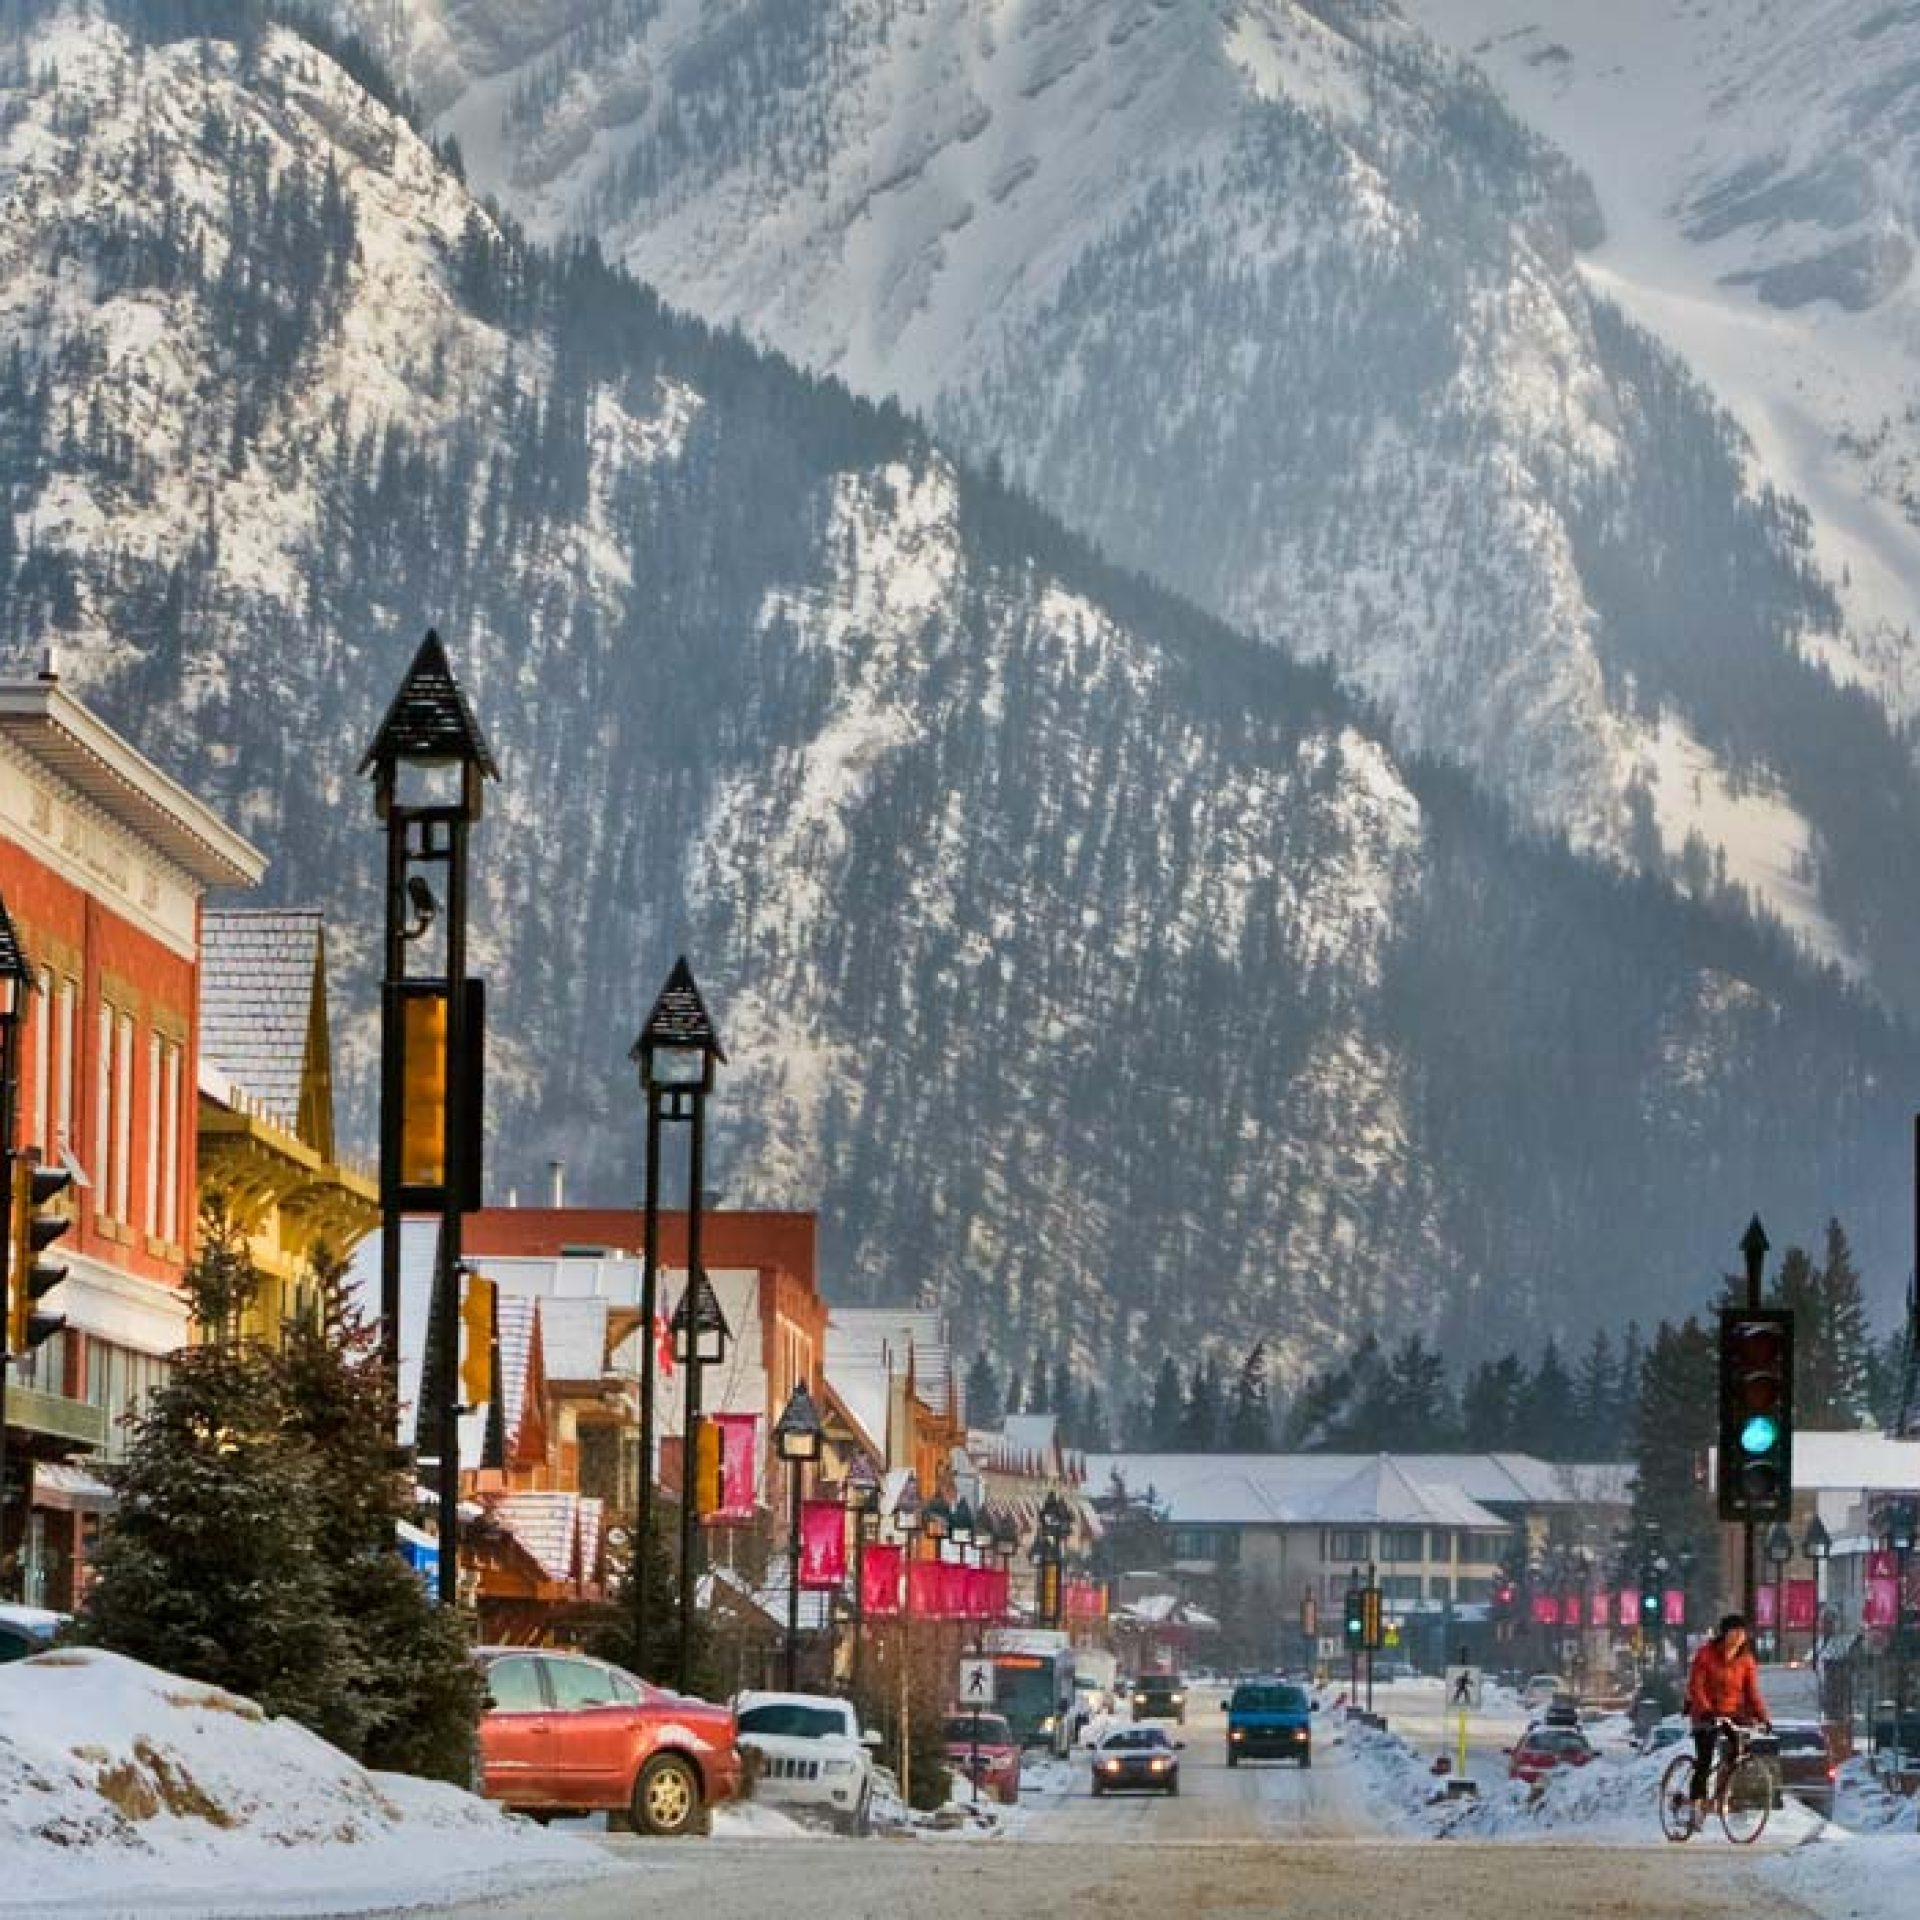 The town of Banff is known for its variety of amenities and proximity to Banff Sunshine and Mt Norquay. Photo: Paul Zizka.